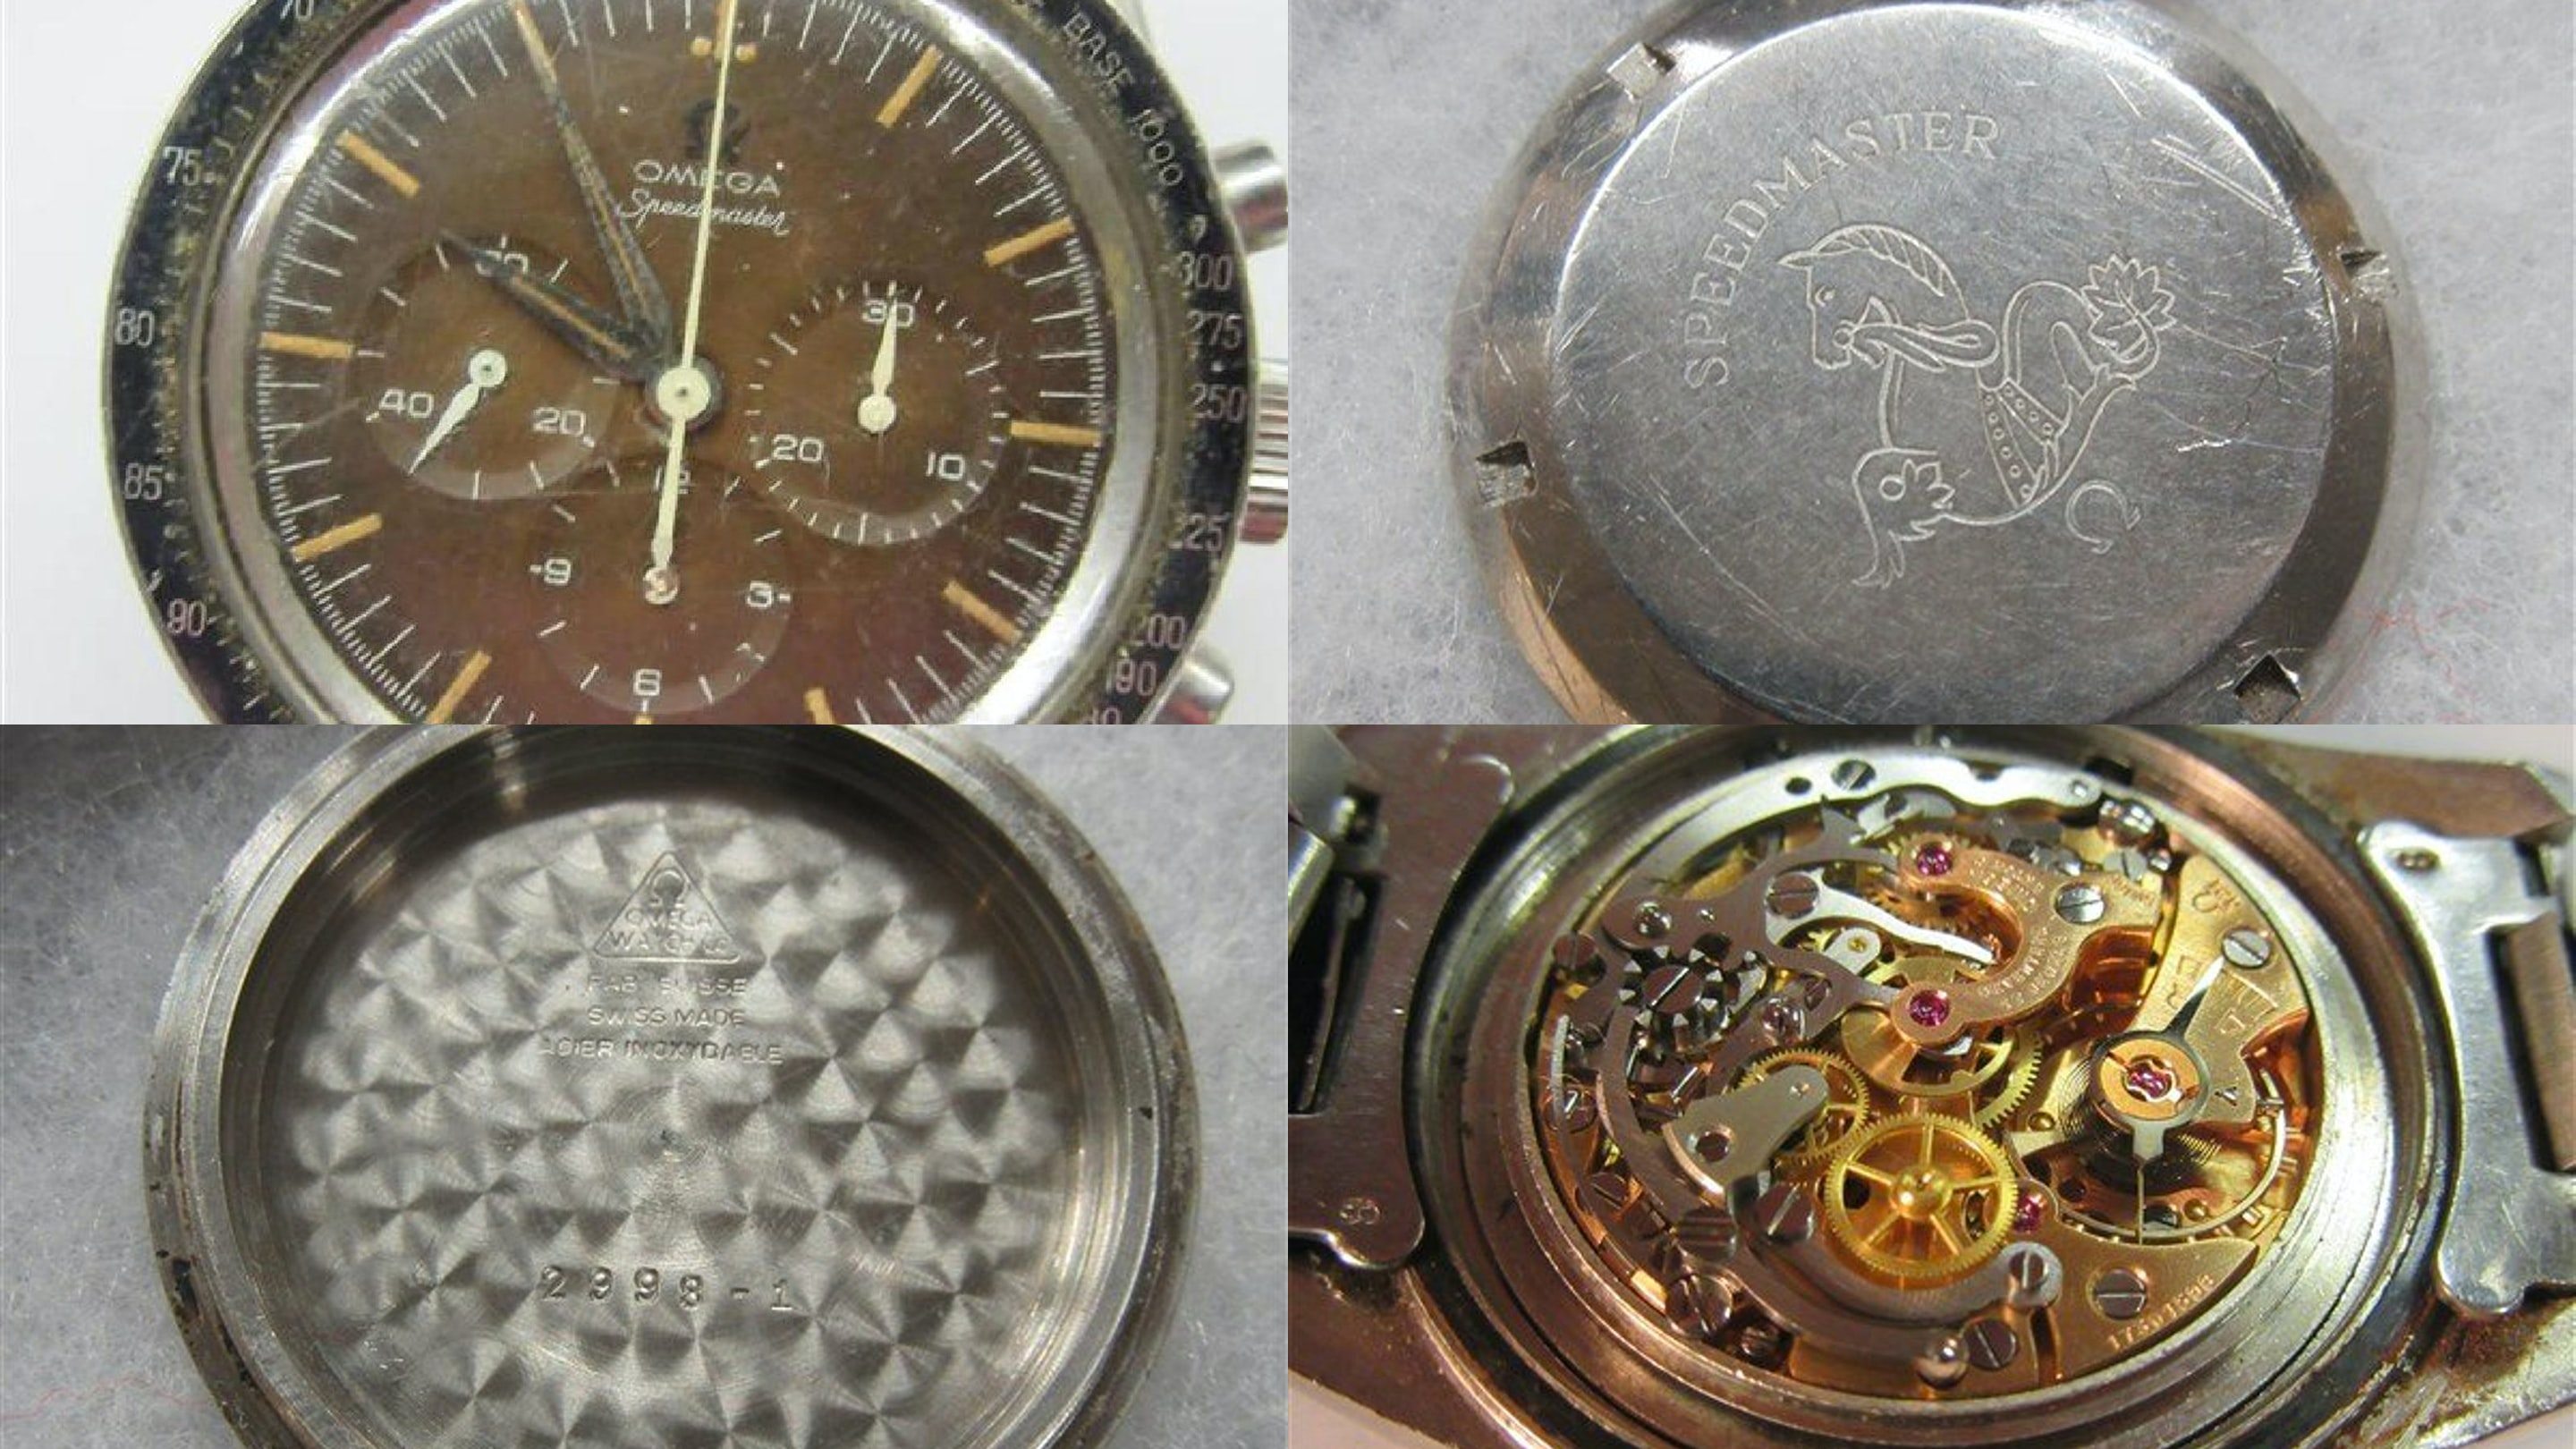 Fffff.jpg?ixlib=rails 1.1 Auction Report: This Barn Find Omega Speedmaster Reference 2998-1 Just Sold For $110,700 Auction Report: This Barn Find Omega Speedmaster Reference 2998-1 Just Sold For $110,700 fffff